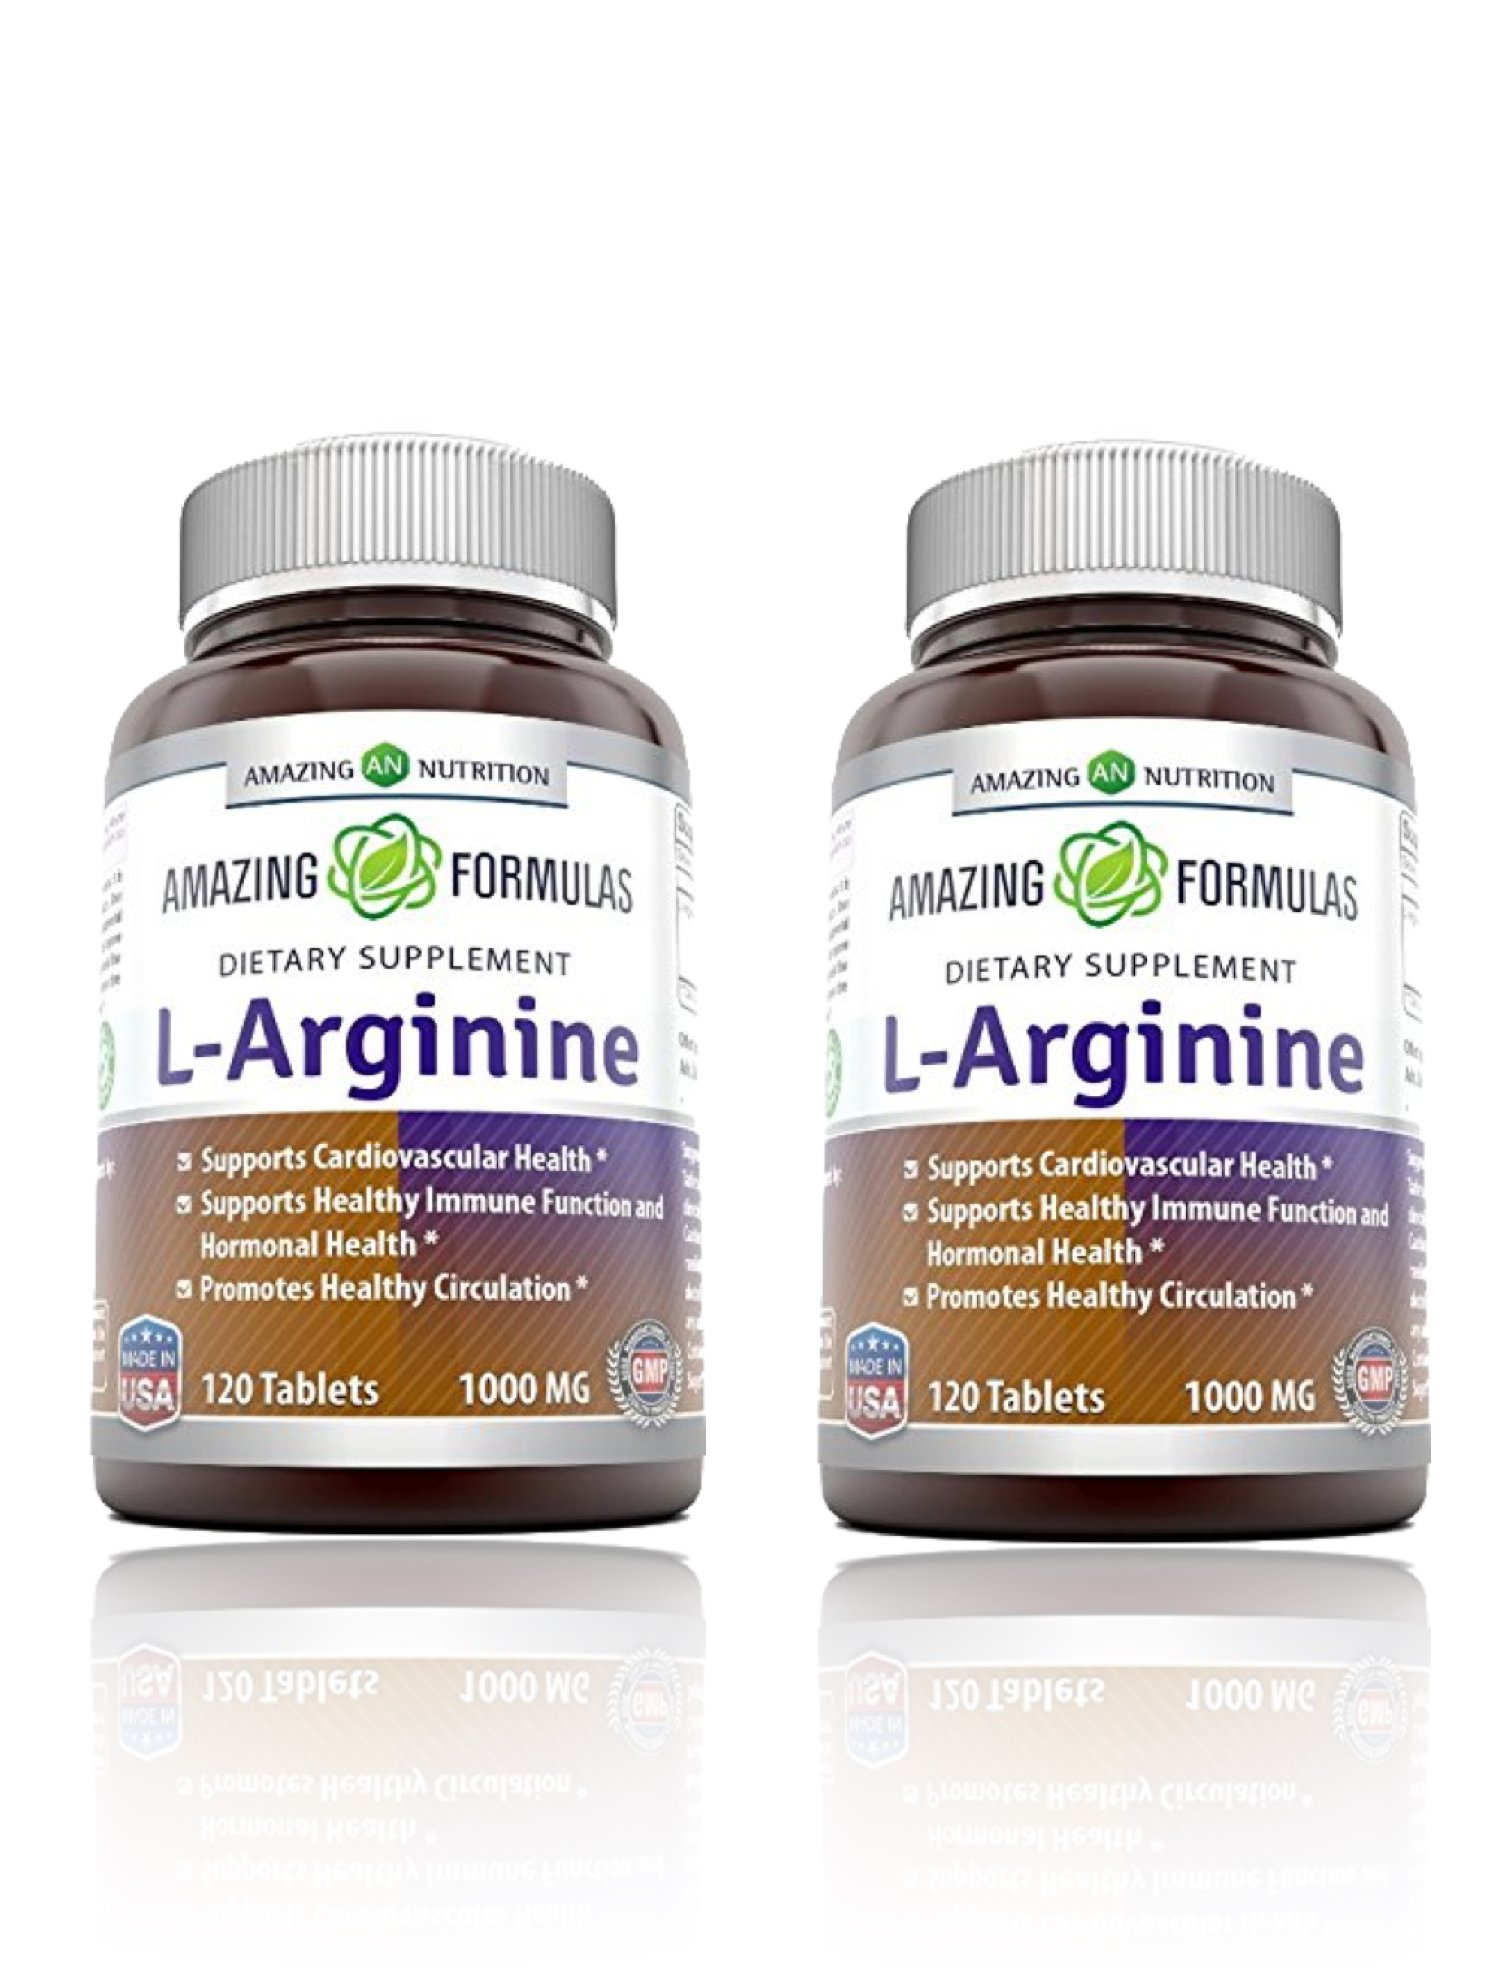 Amazing Formulas L-Arginine 1000mg Supplement - Best Amino Acid Arginine HCL Supplements for Women & Man - Promotes Circulation and Supports Cardiovascular Health - 2 Pack